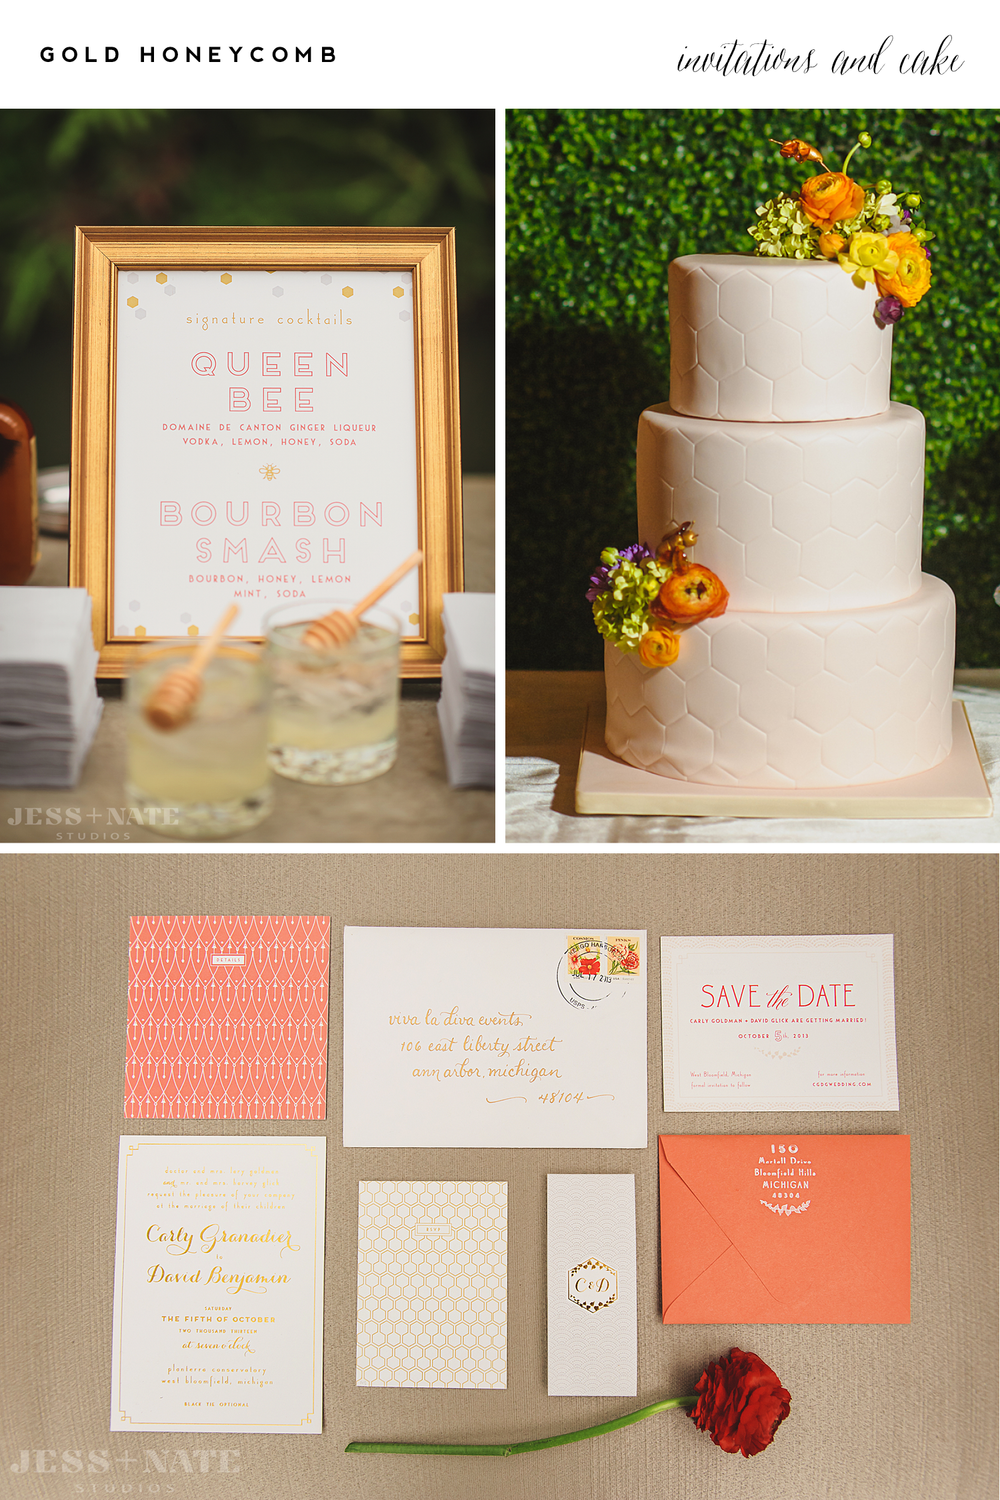 Alisa Bobzien  . stationery |   Jess + Nate Studios  , photography |   Sweet Heather Anne  , cake |   VLD   Events, event design | Planterra,  floral    Customizable Grand Fete invitations are  available online here.